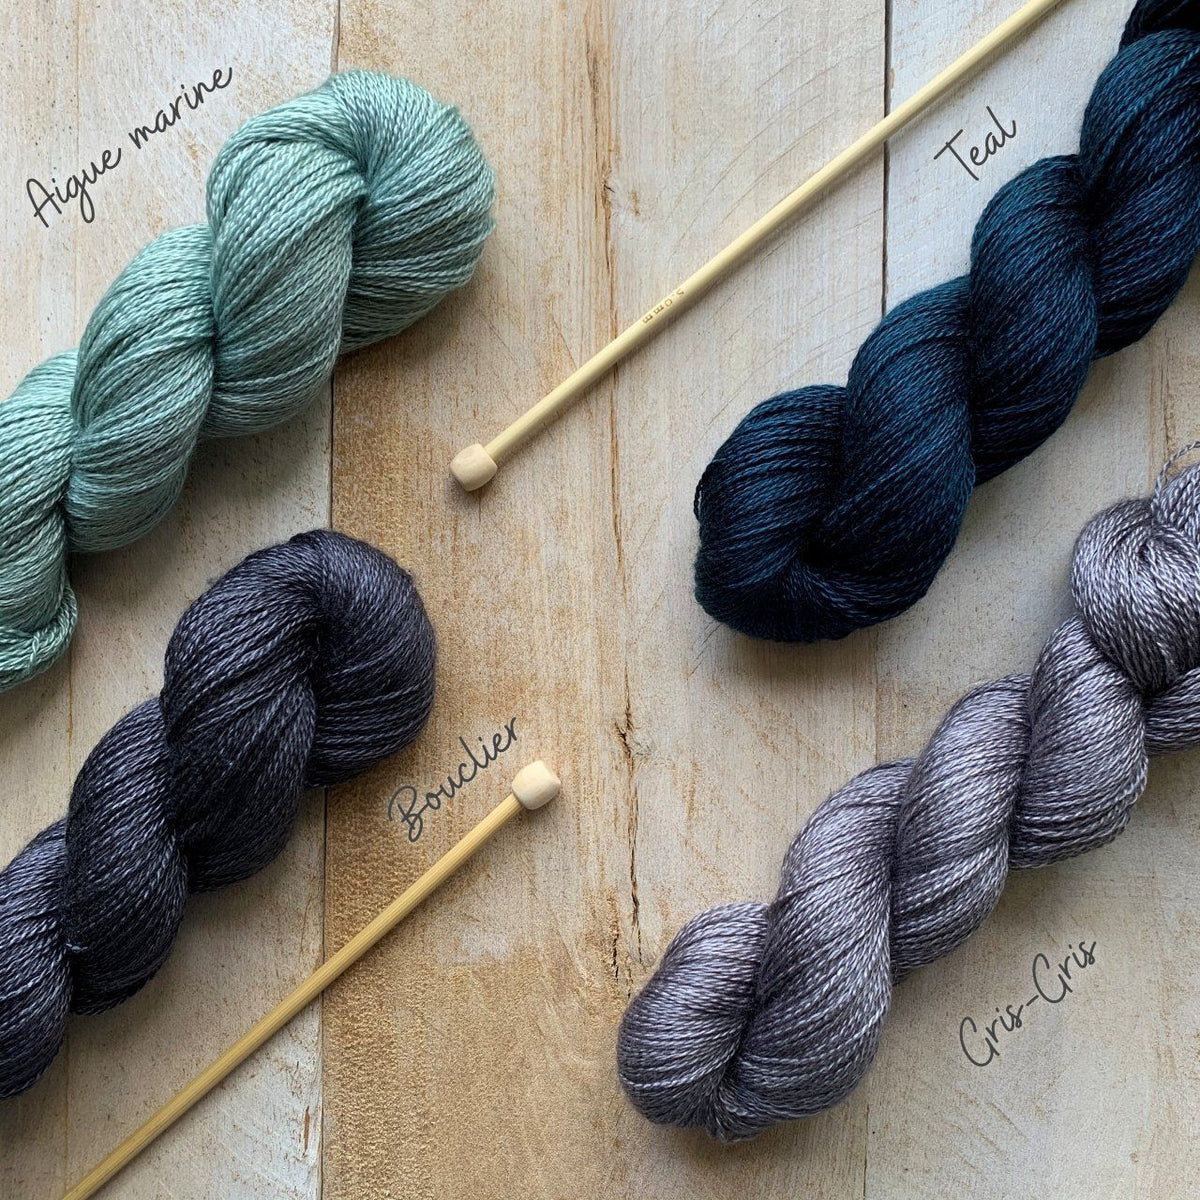 CashSilk Lace yarn Aigue marine